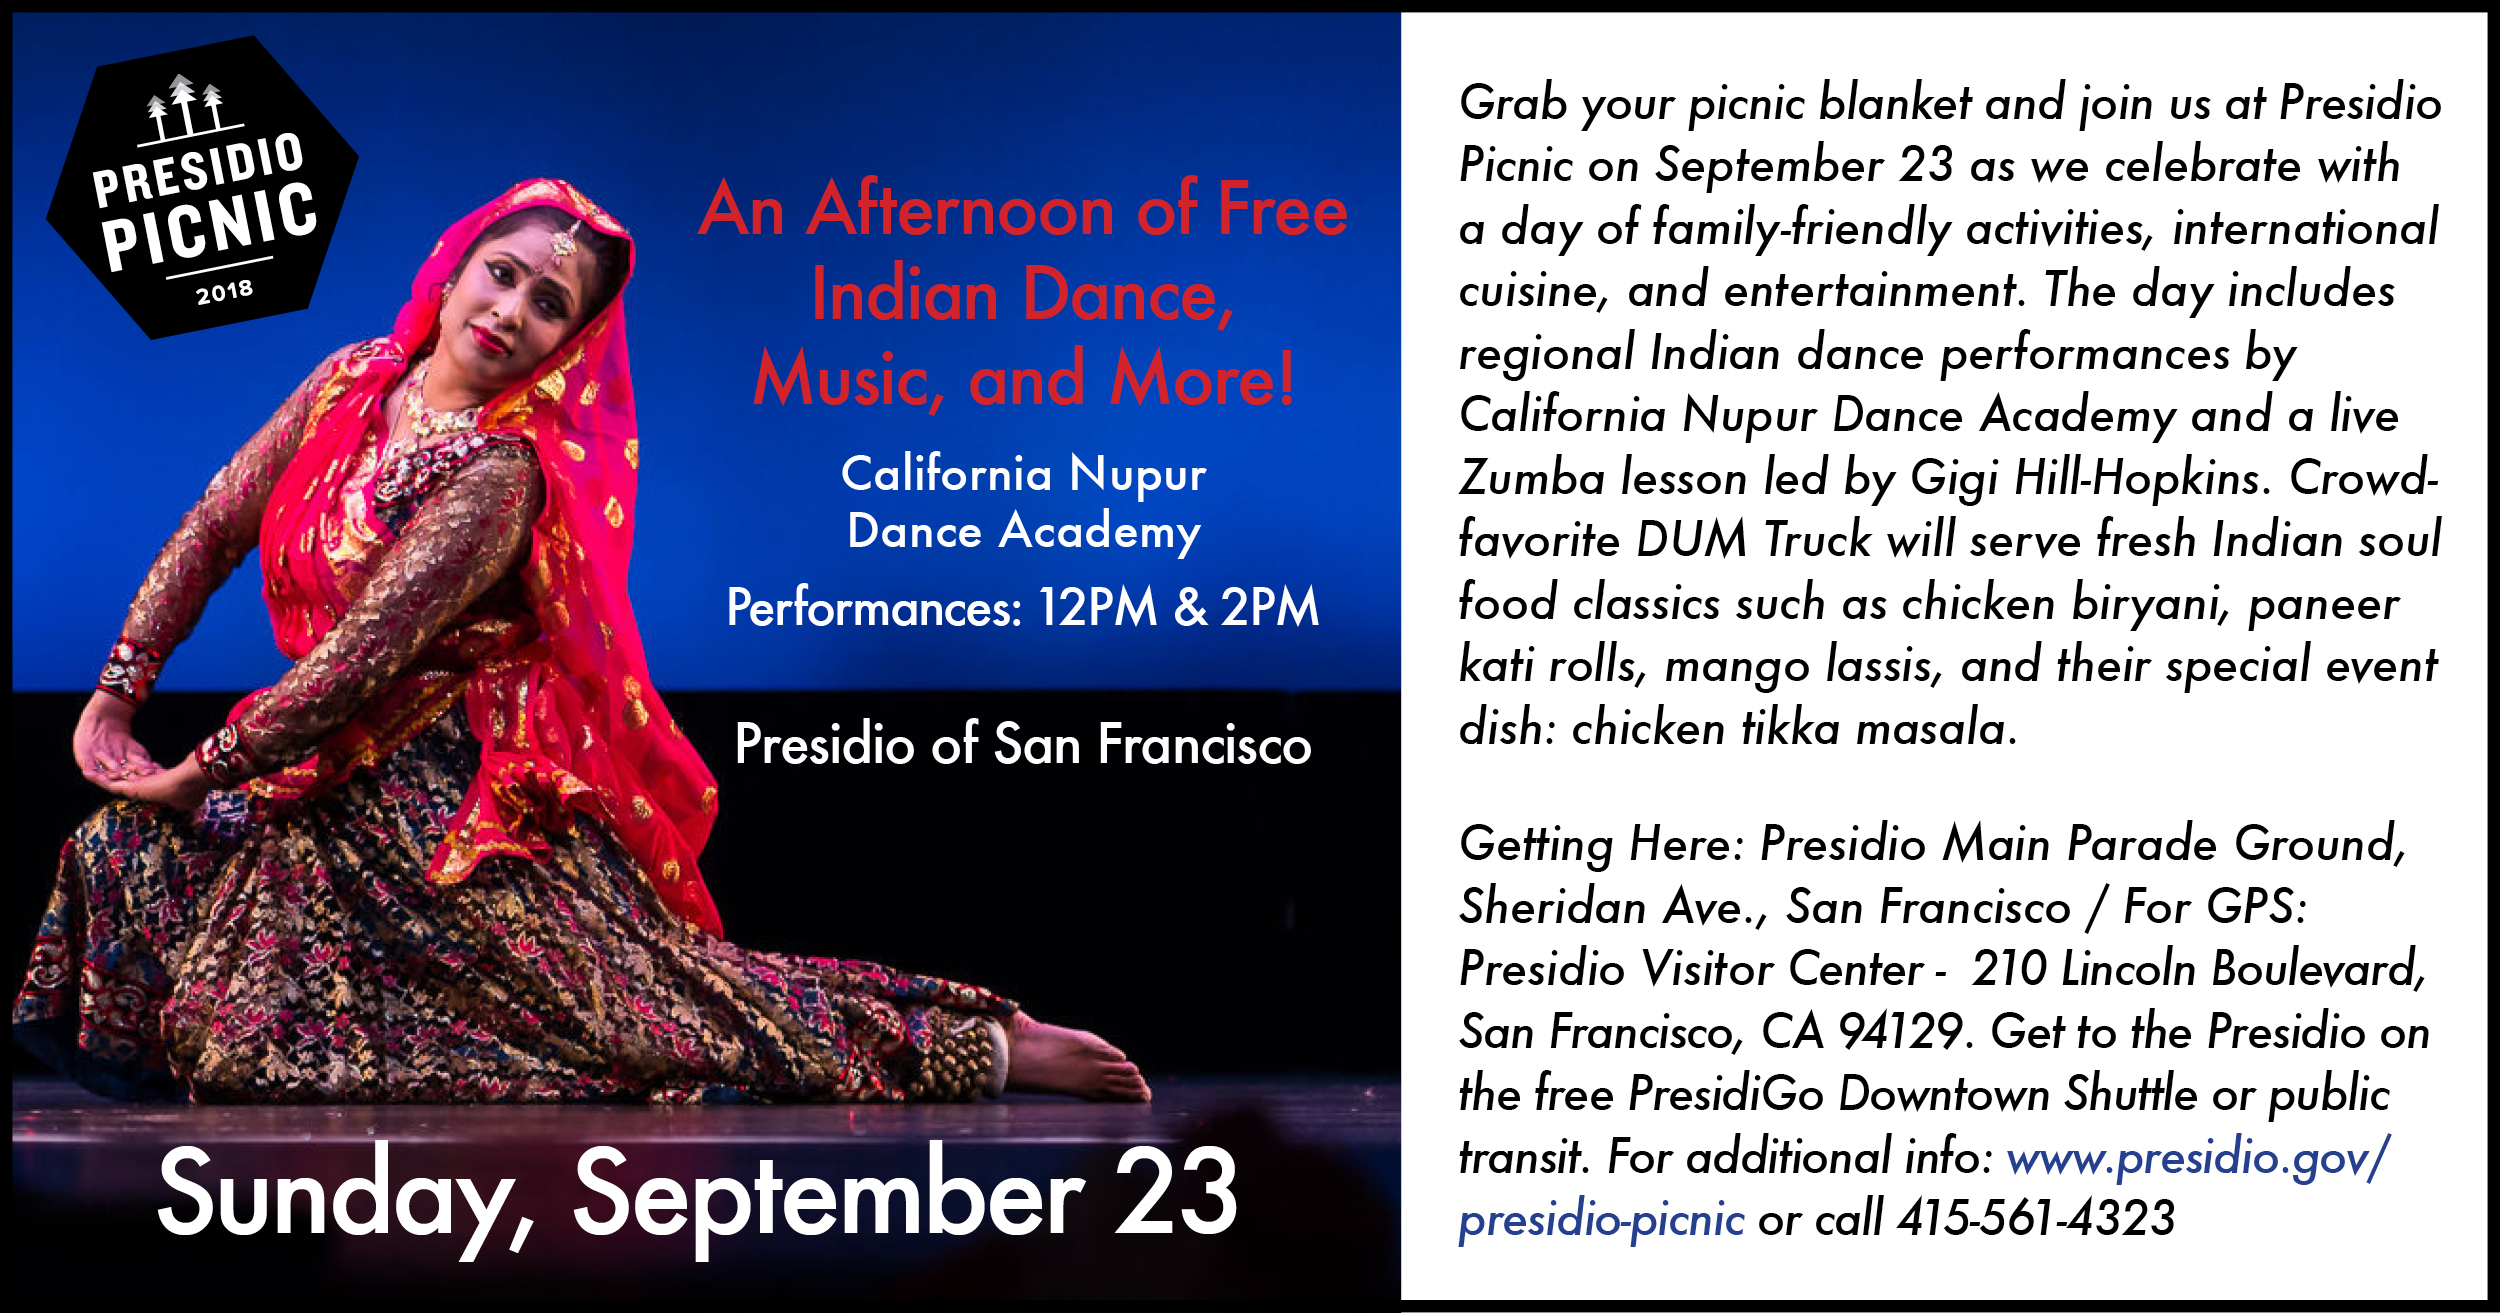 Presidio Picnic: Indian Day